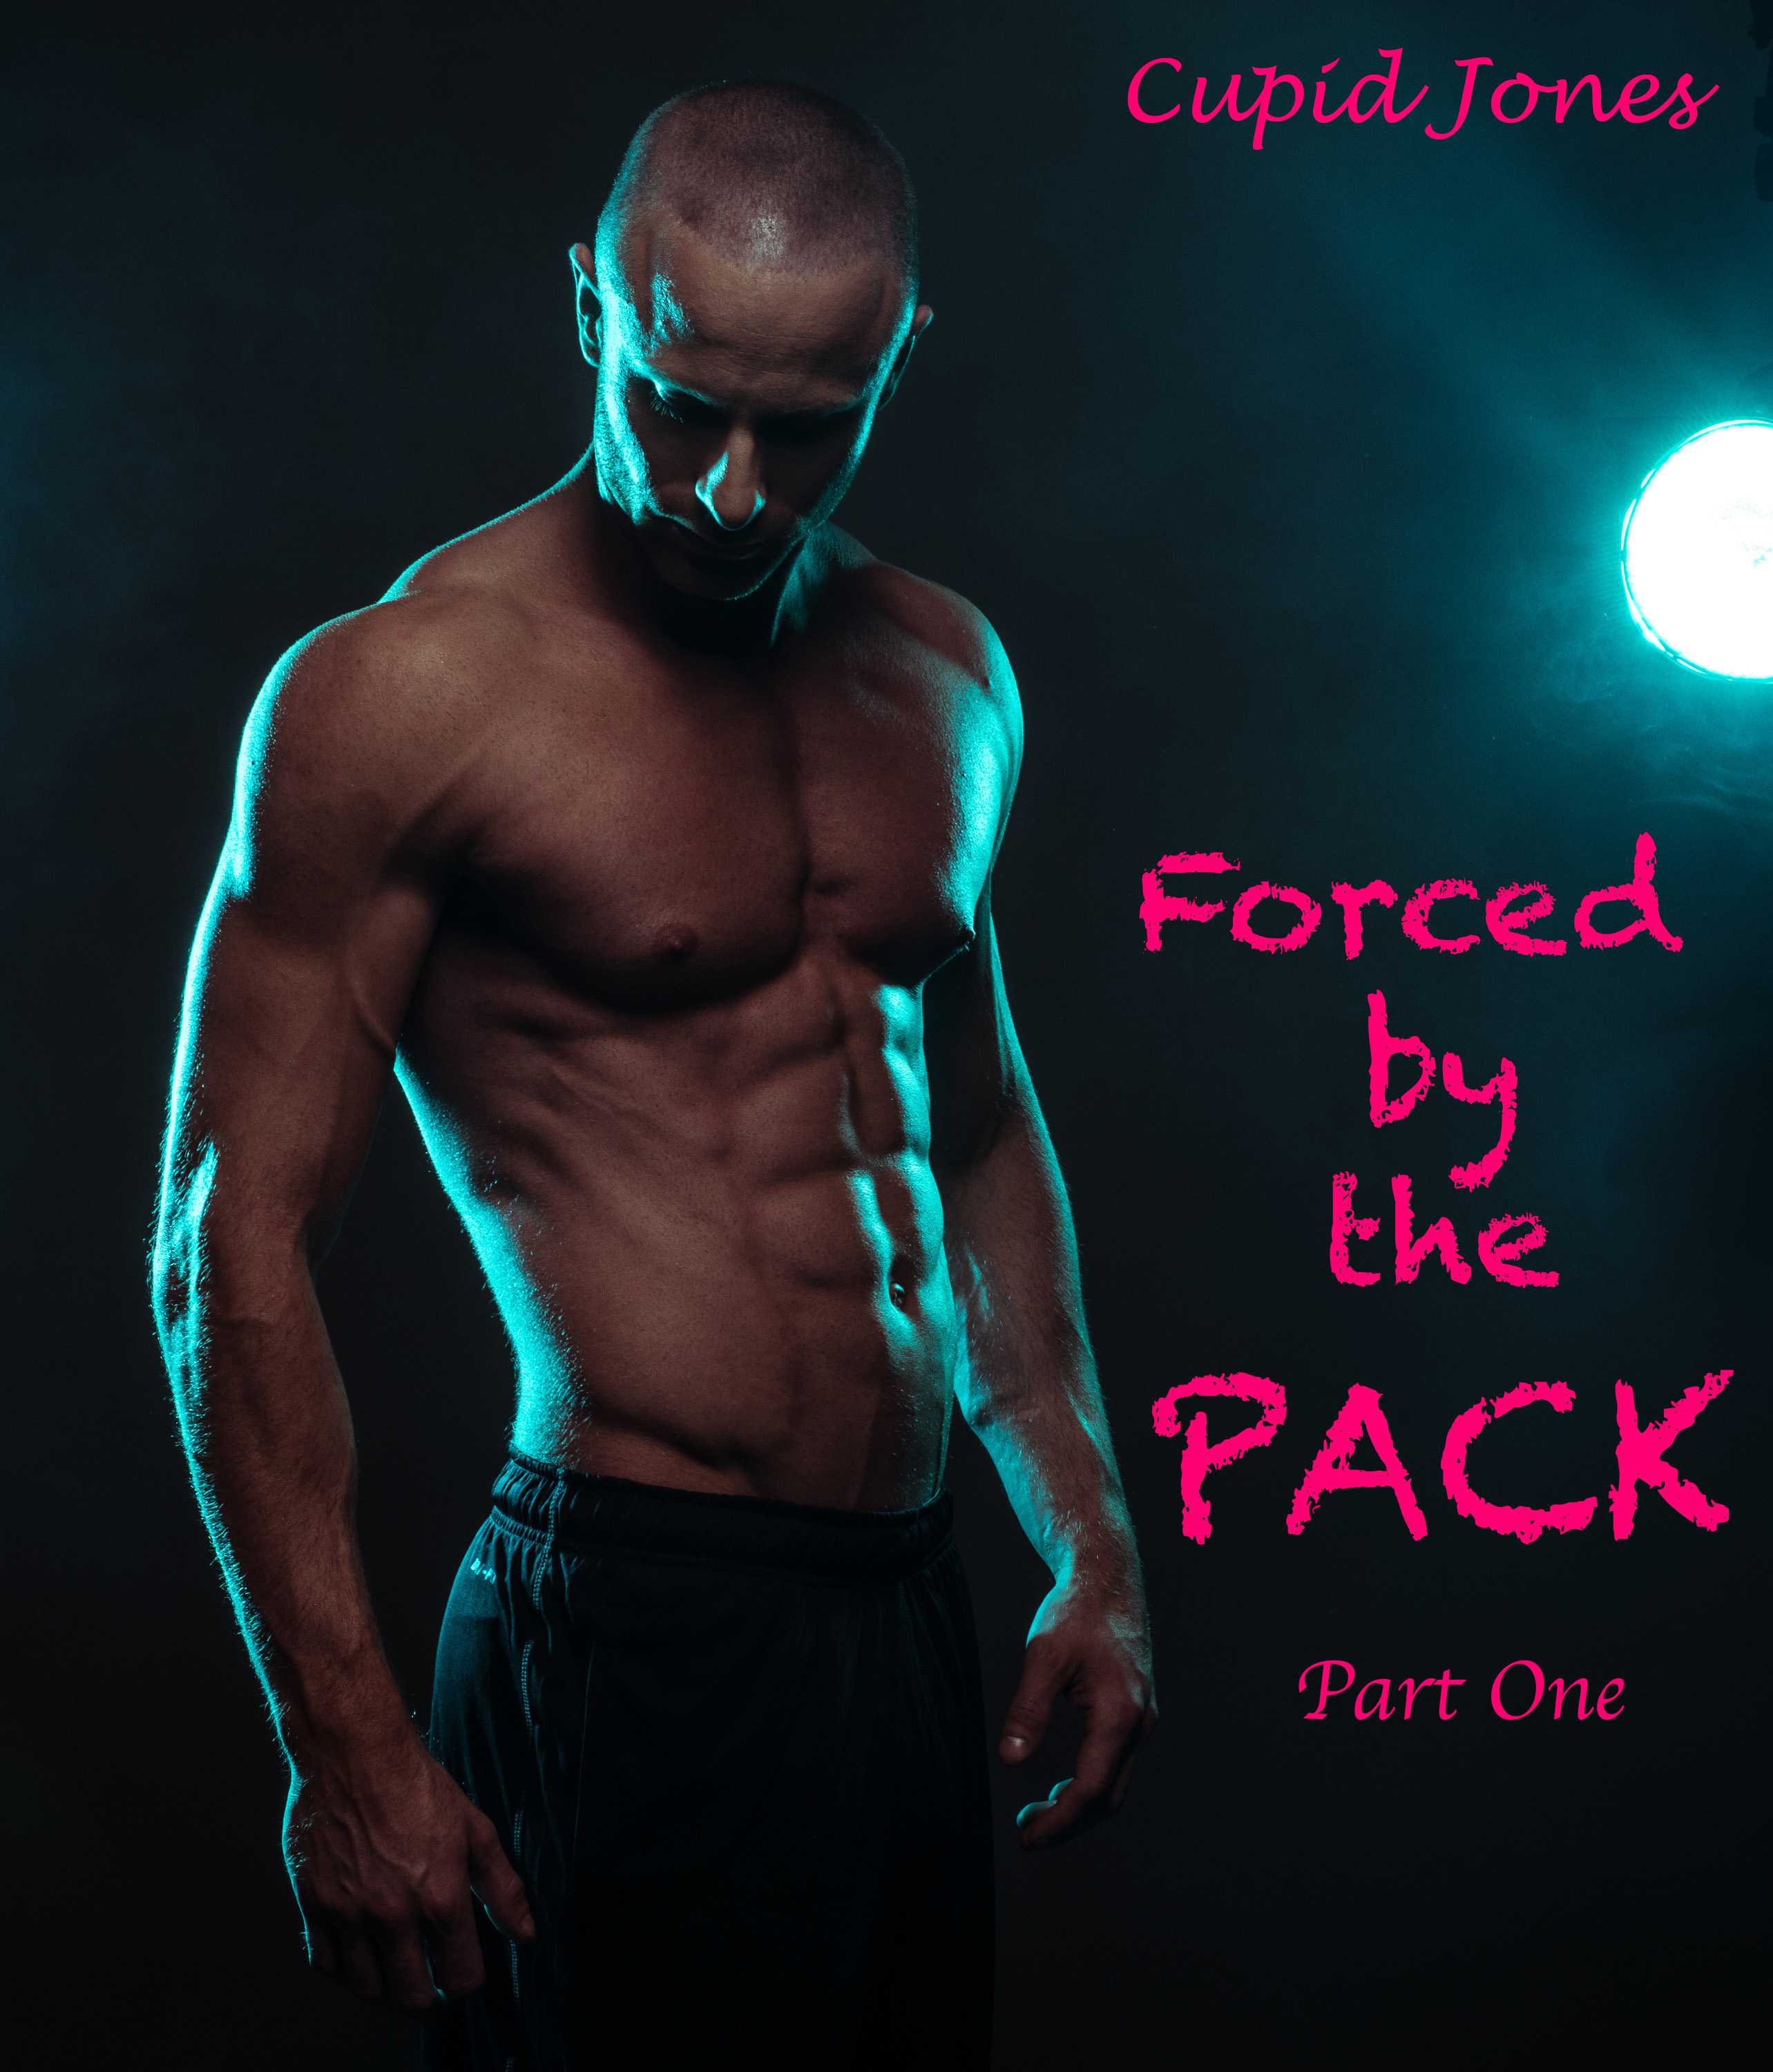 Forced the Pack, Part One by Cupid Jones